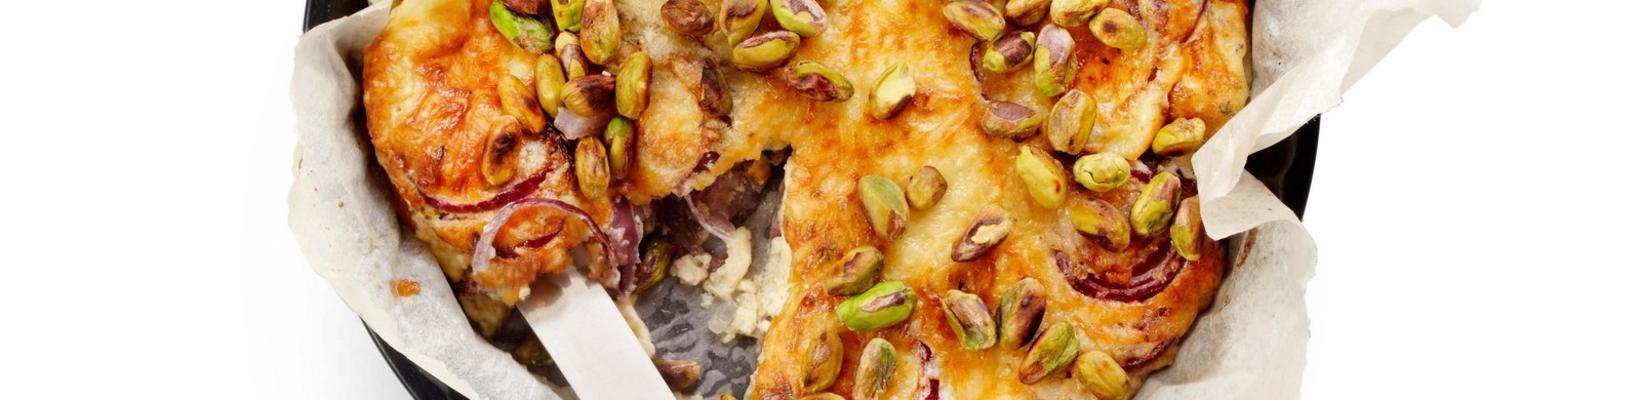 red onions gratin with pistachio nuts